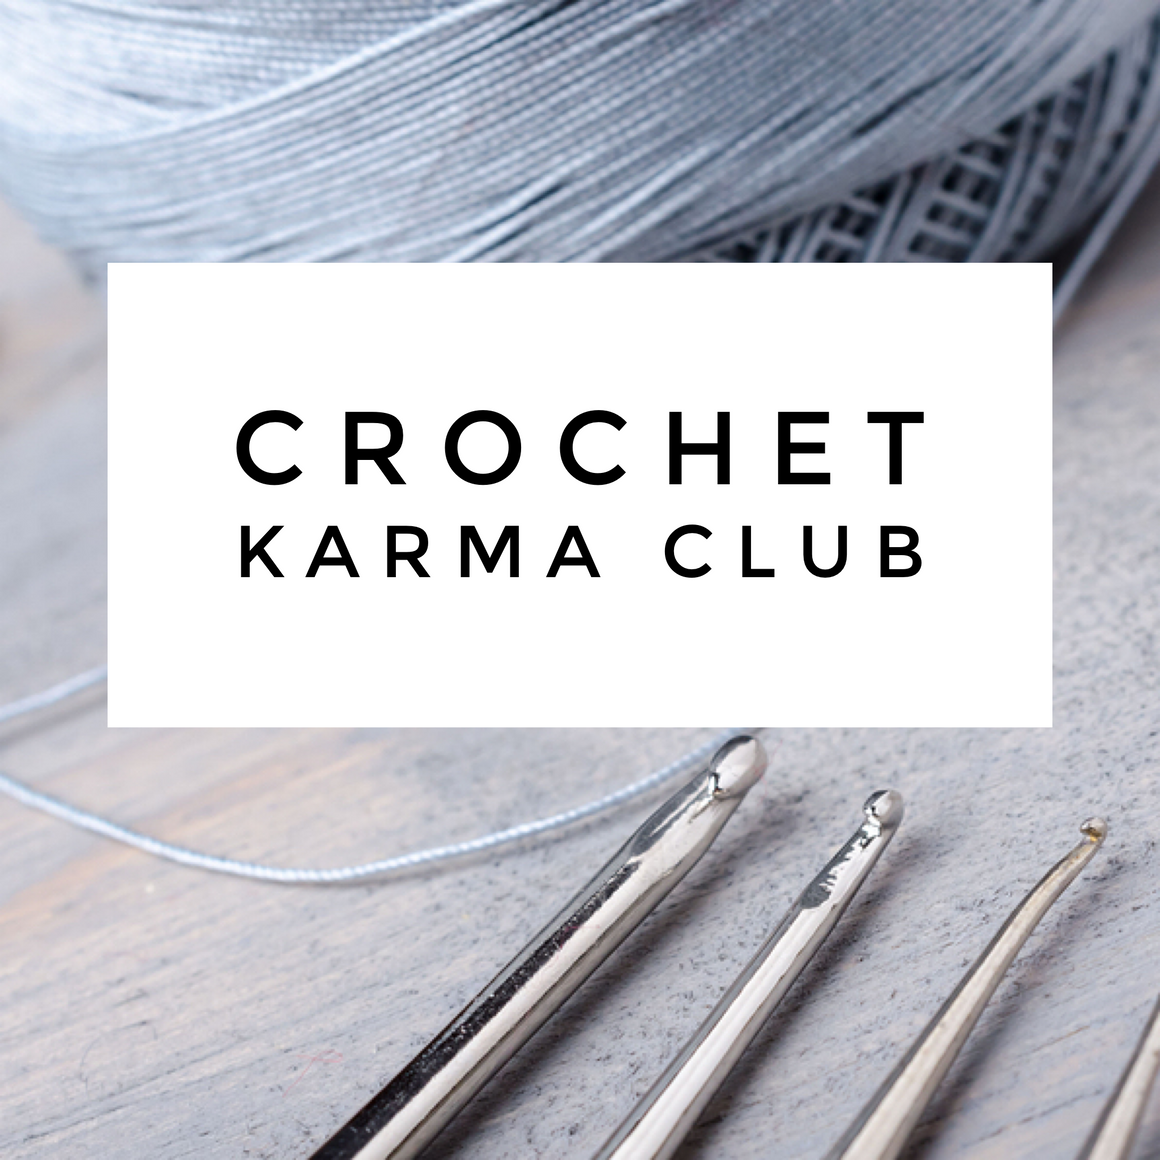 CROCHET KARMA CLUB CARD | 1 two-and-a-half session | All Skill Levels | Work on a Project | Group Crochet Classes